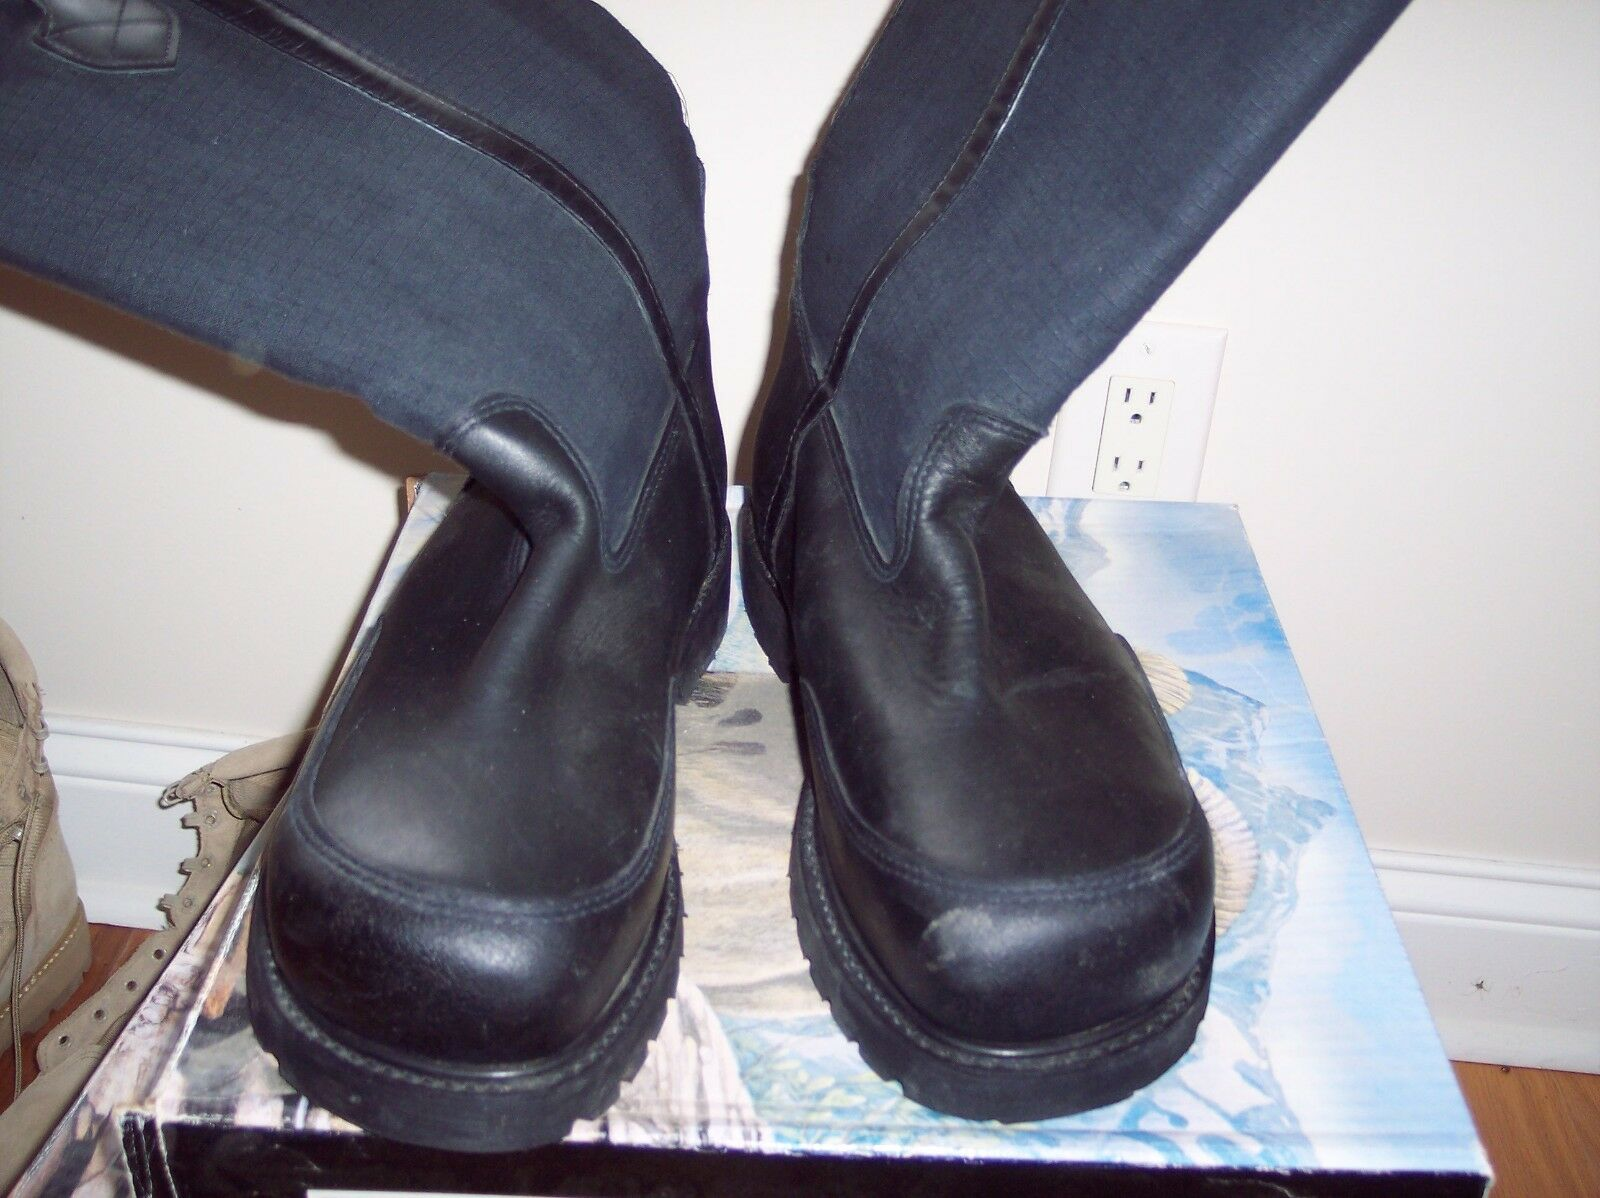 FIREFIGHTER BOOTS 4132 PRO-WARRINGTON SPECIAL PRICING SIZE 8.5D FREE SHIPPING